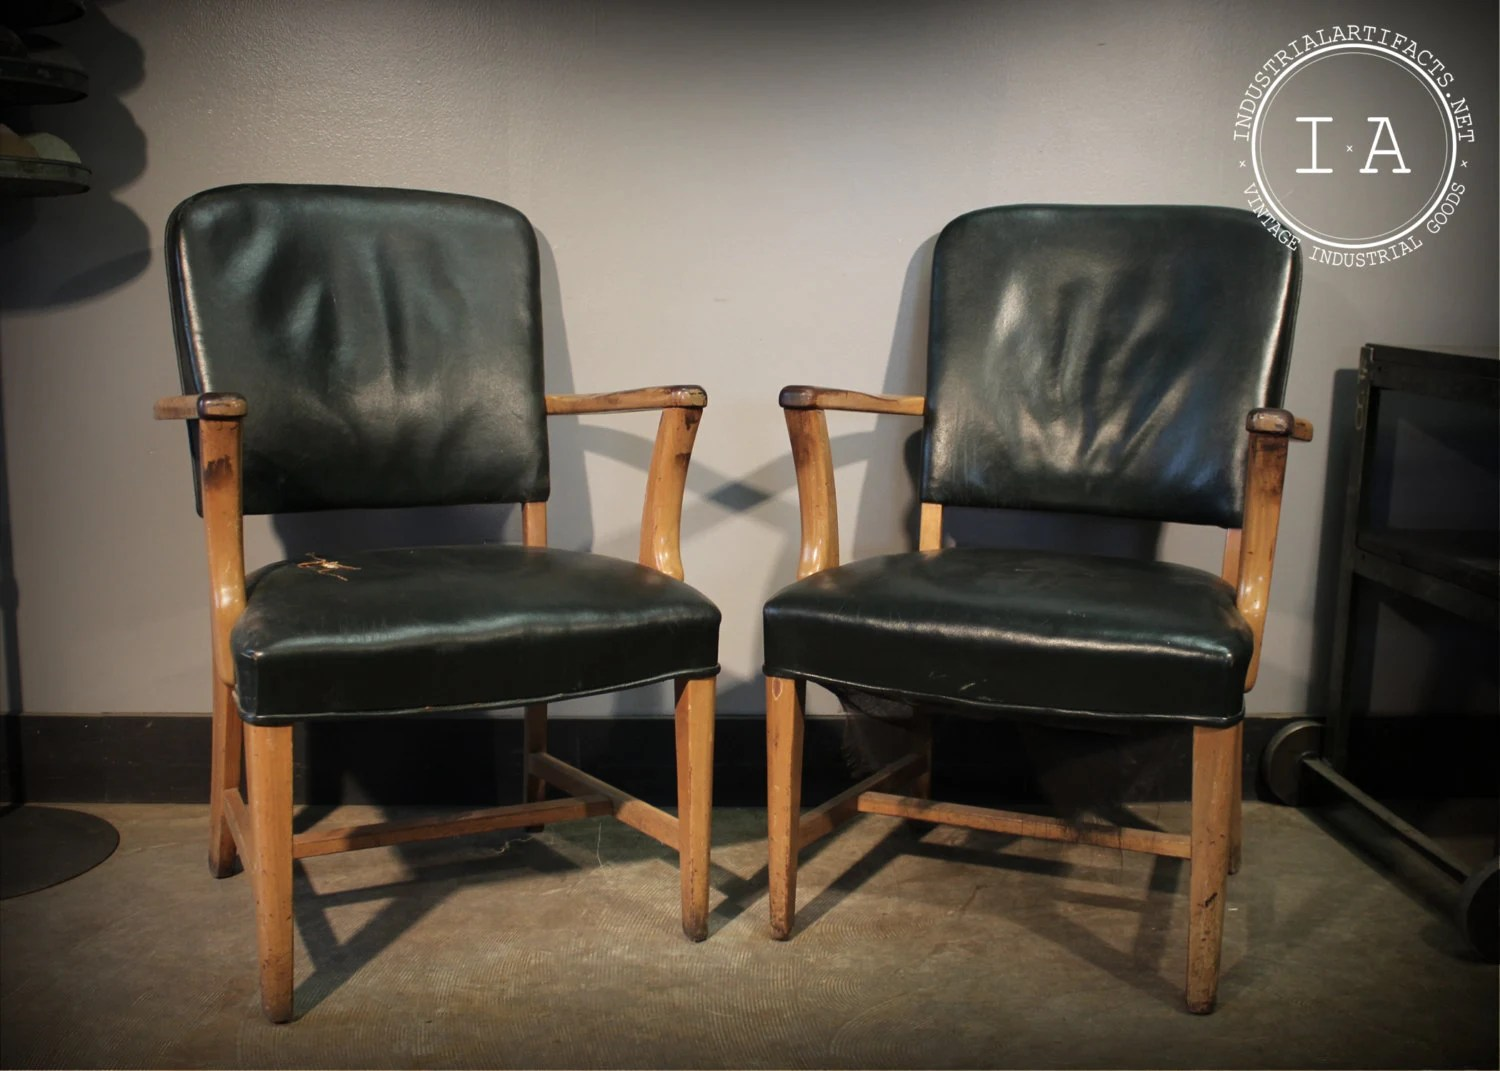 the chair company gander mountain chairs vintage industrial jasper green leather and wood